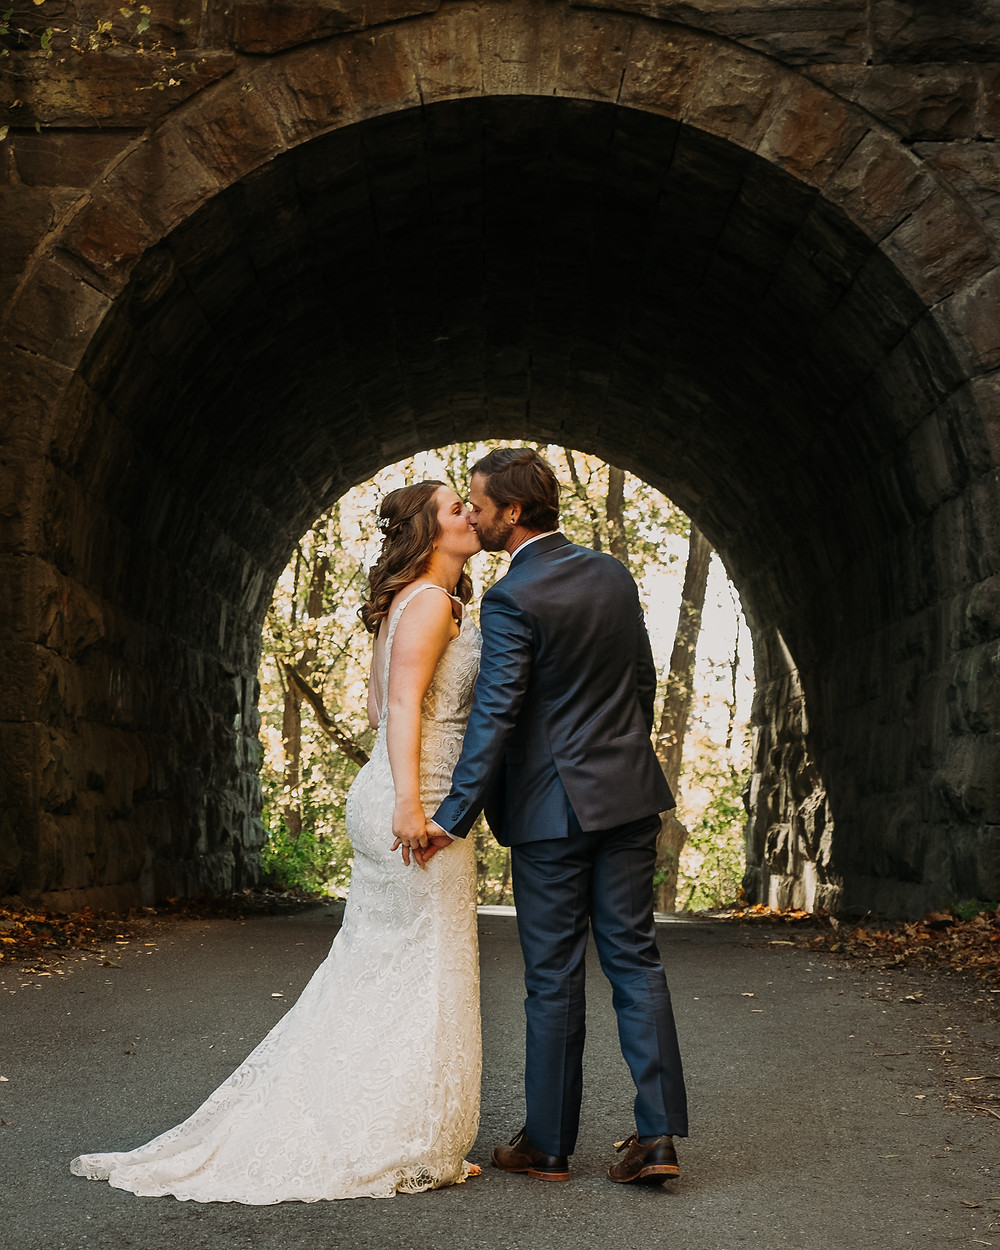 A Couple Kisses Under a Bridge After Exchanging Vows in Upstate New York